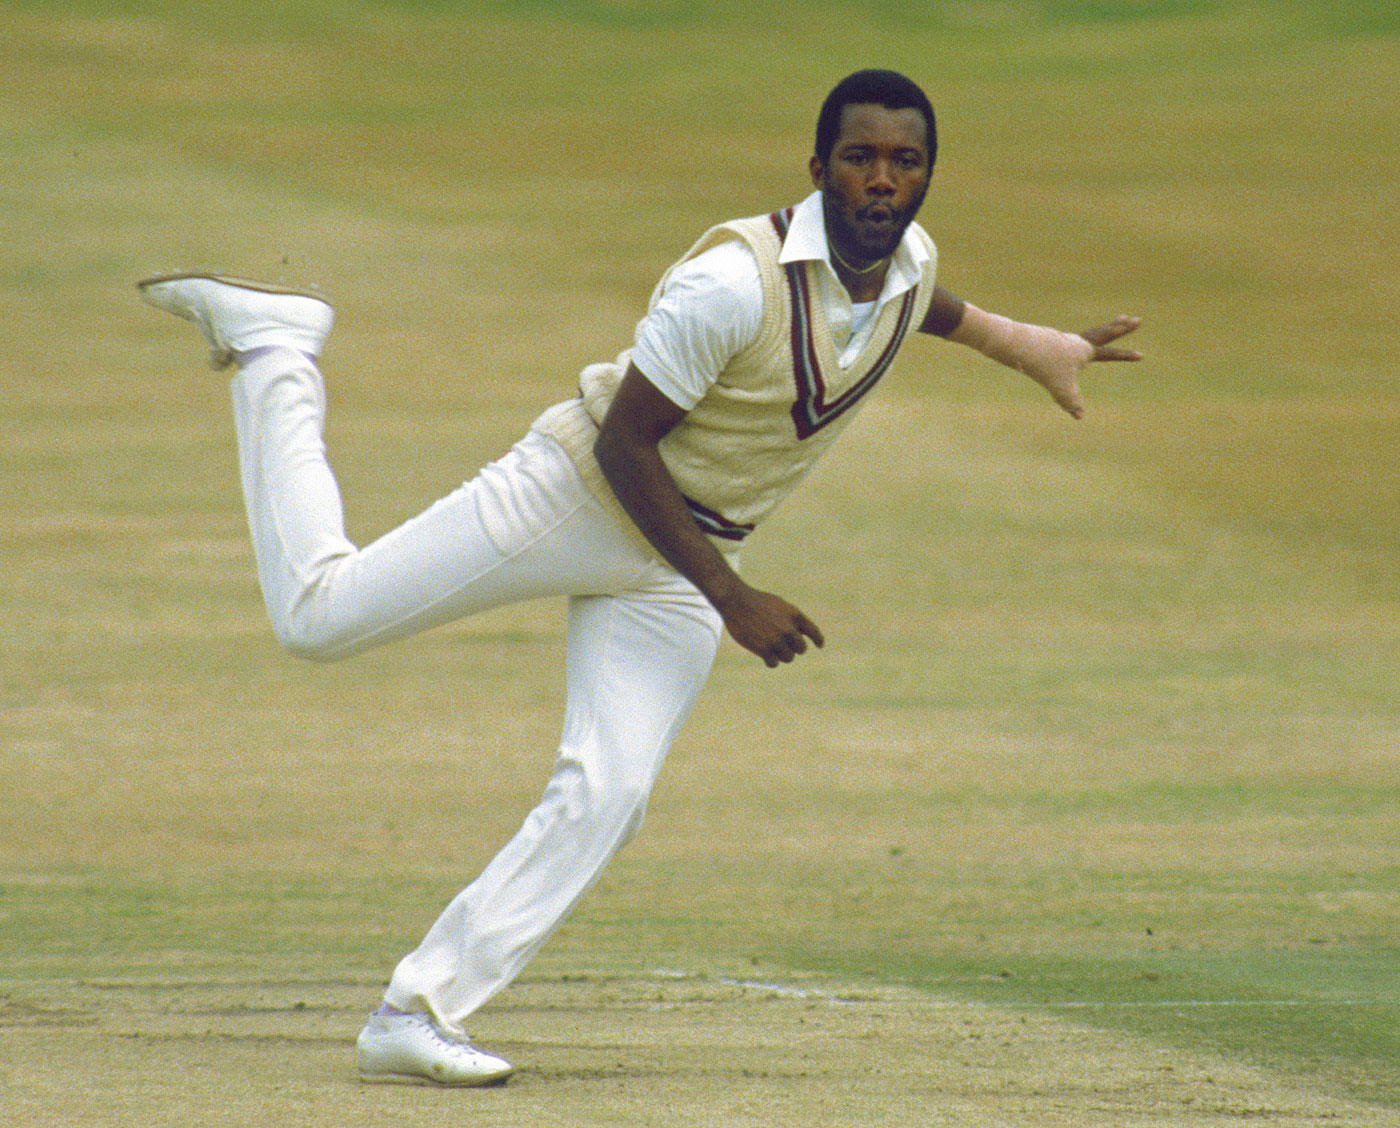 David Gower trying to pick one out, given all their strengths and differences, is not easy but the palm would have to go to nasty little Malcolm Marshall.